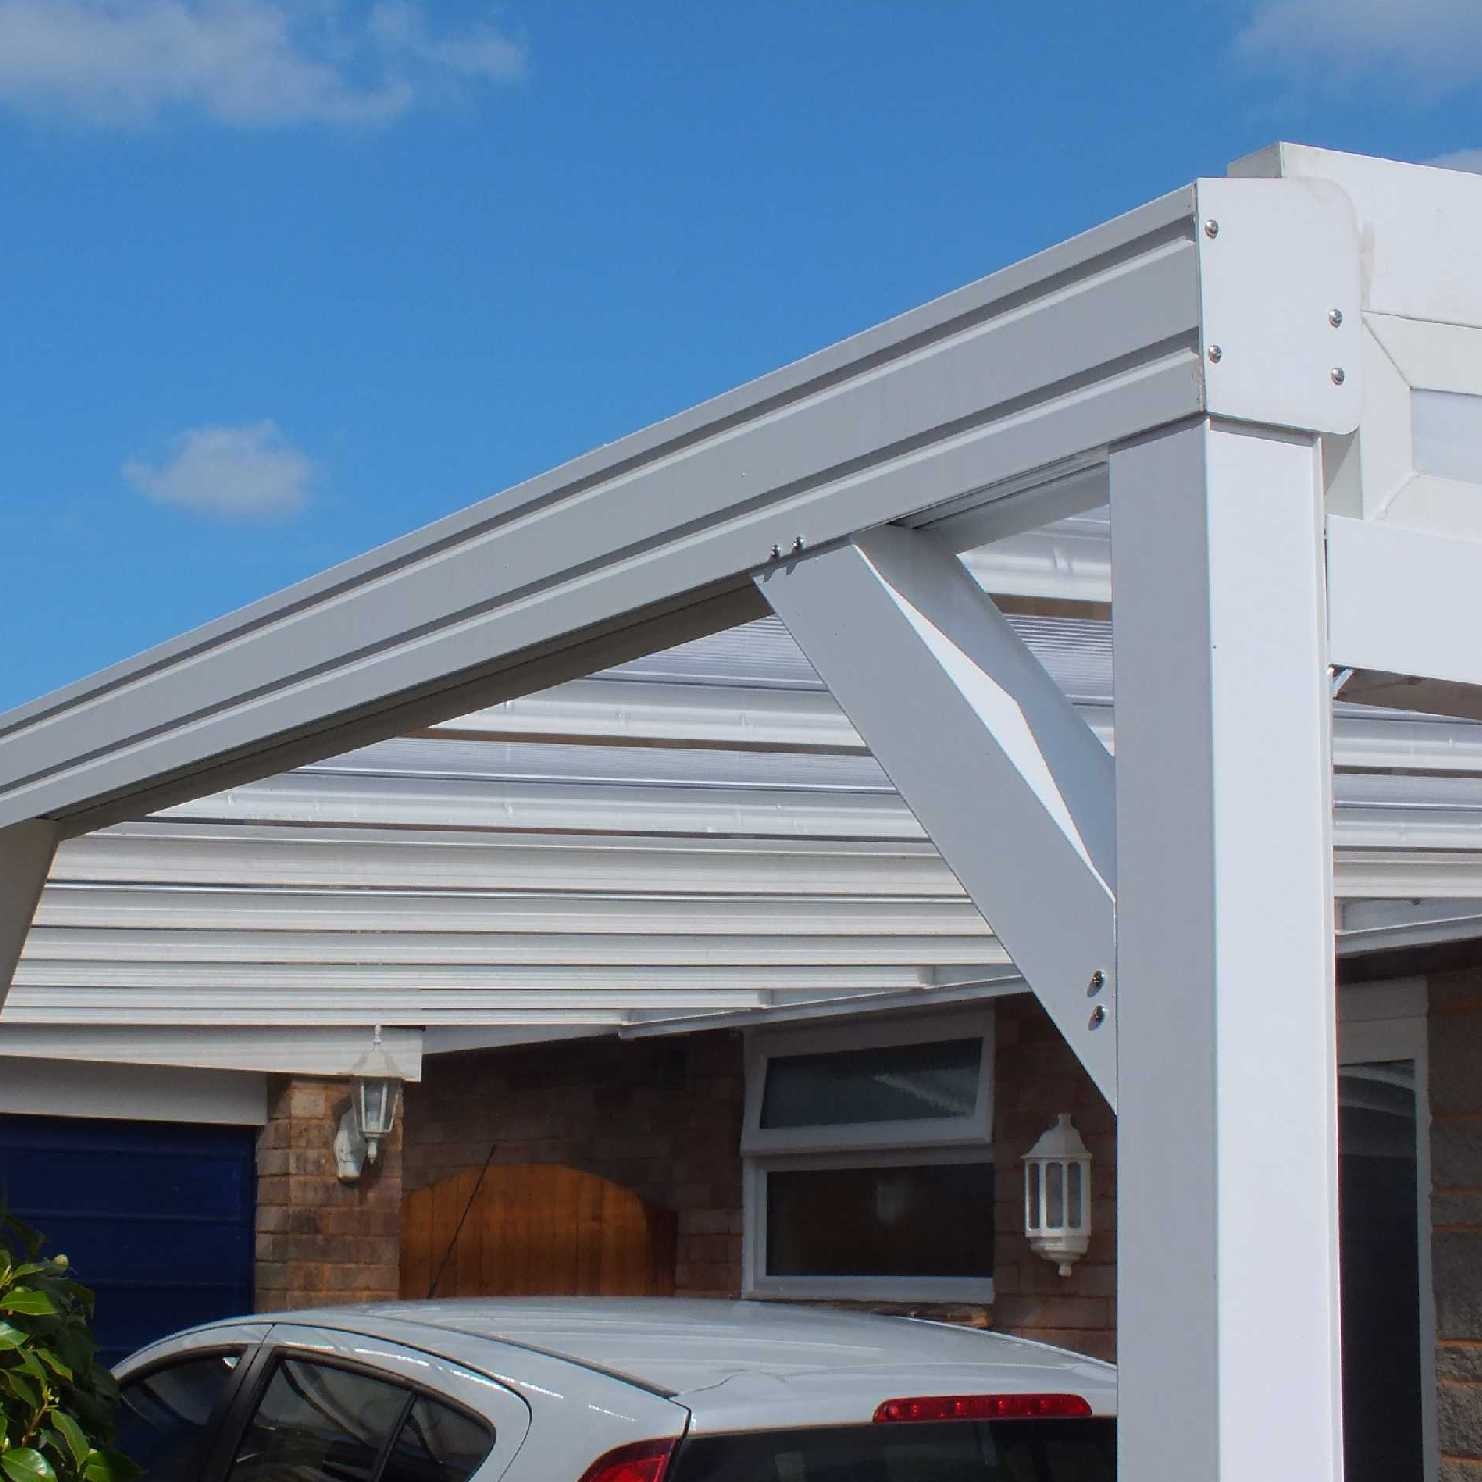 Buy Omega Smart White Lean-To Canopy with 16mm Polycarbonate Glazing - 2.8m (W) x 4.0m(P), (2) Supporting Posts online today